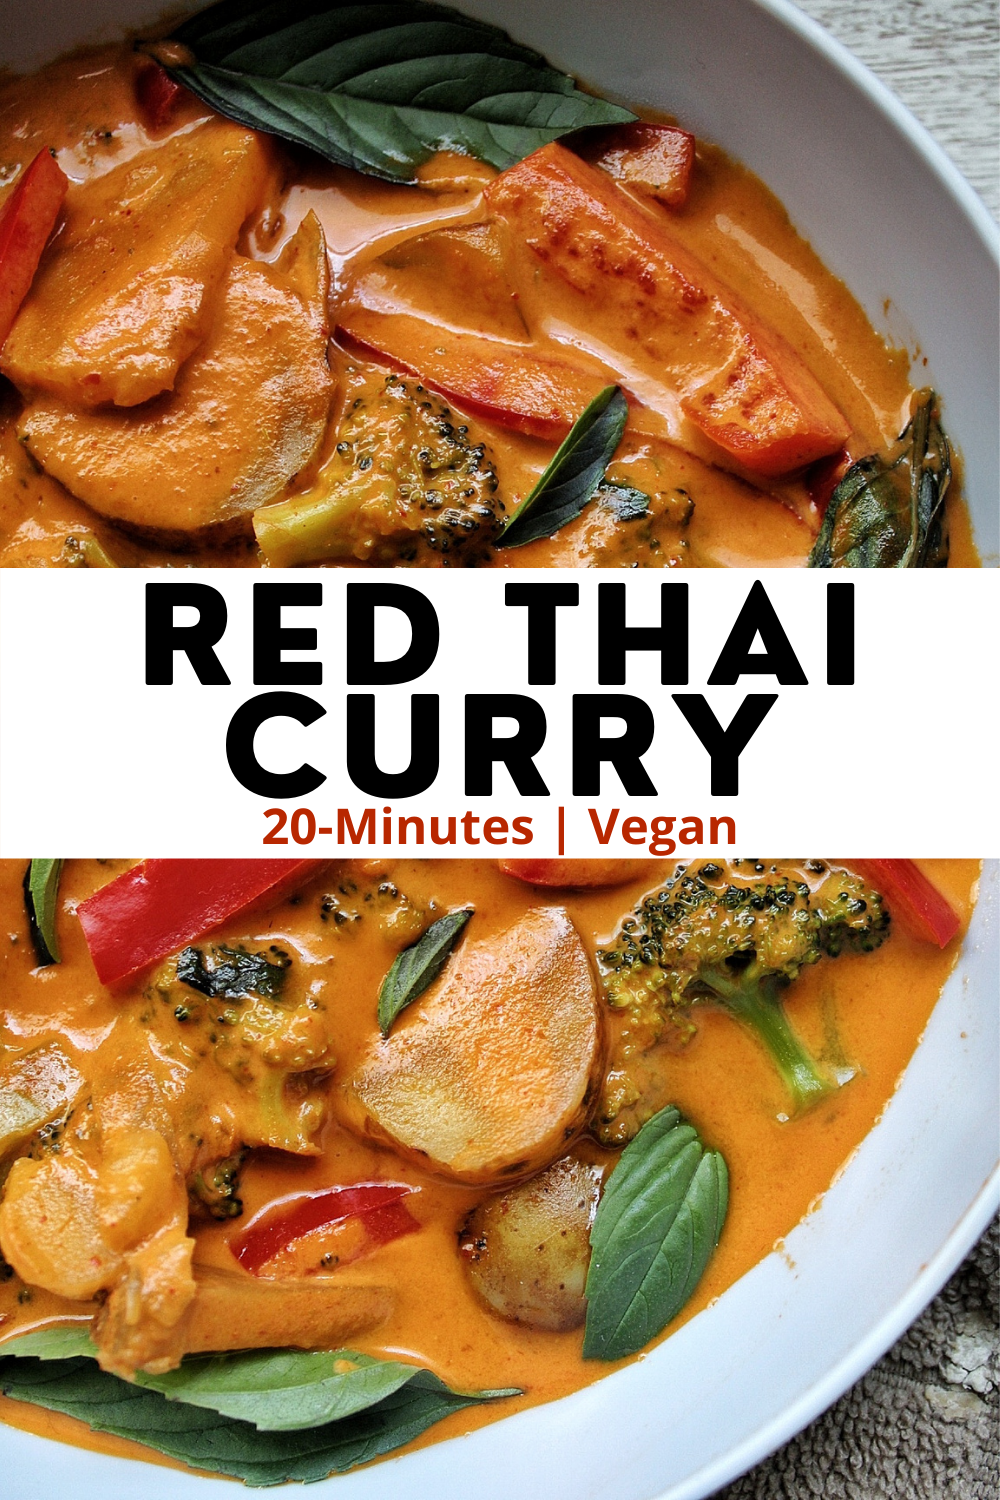 Veetable red thai curry with broccoli, potatoes, and red bell peppers.